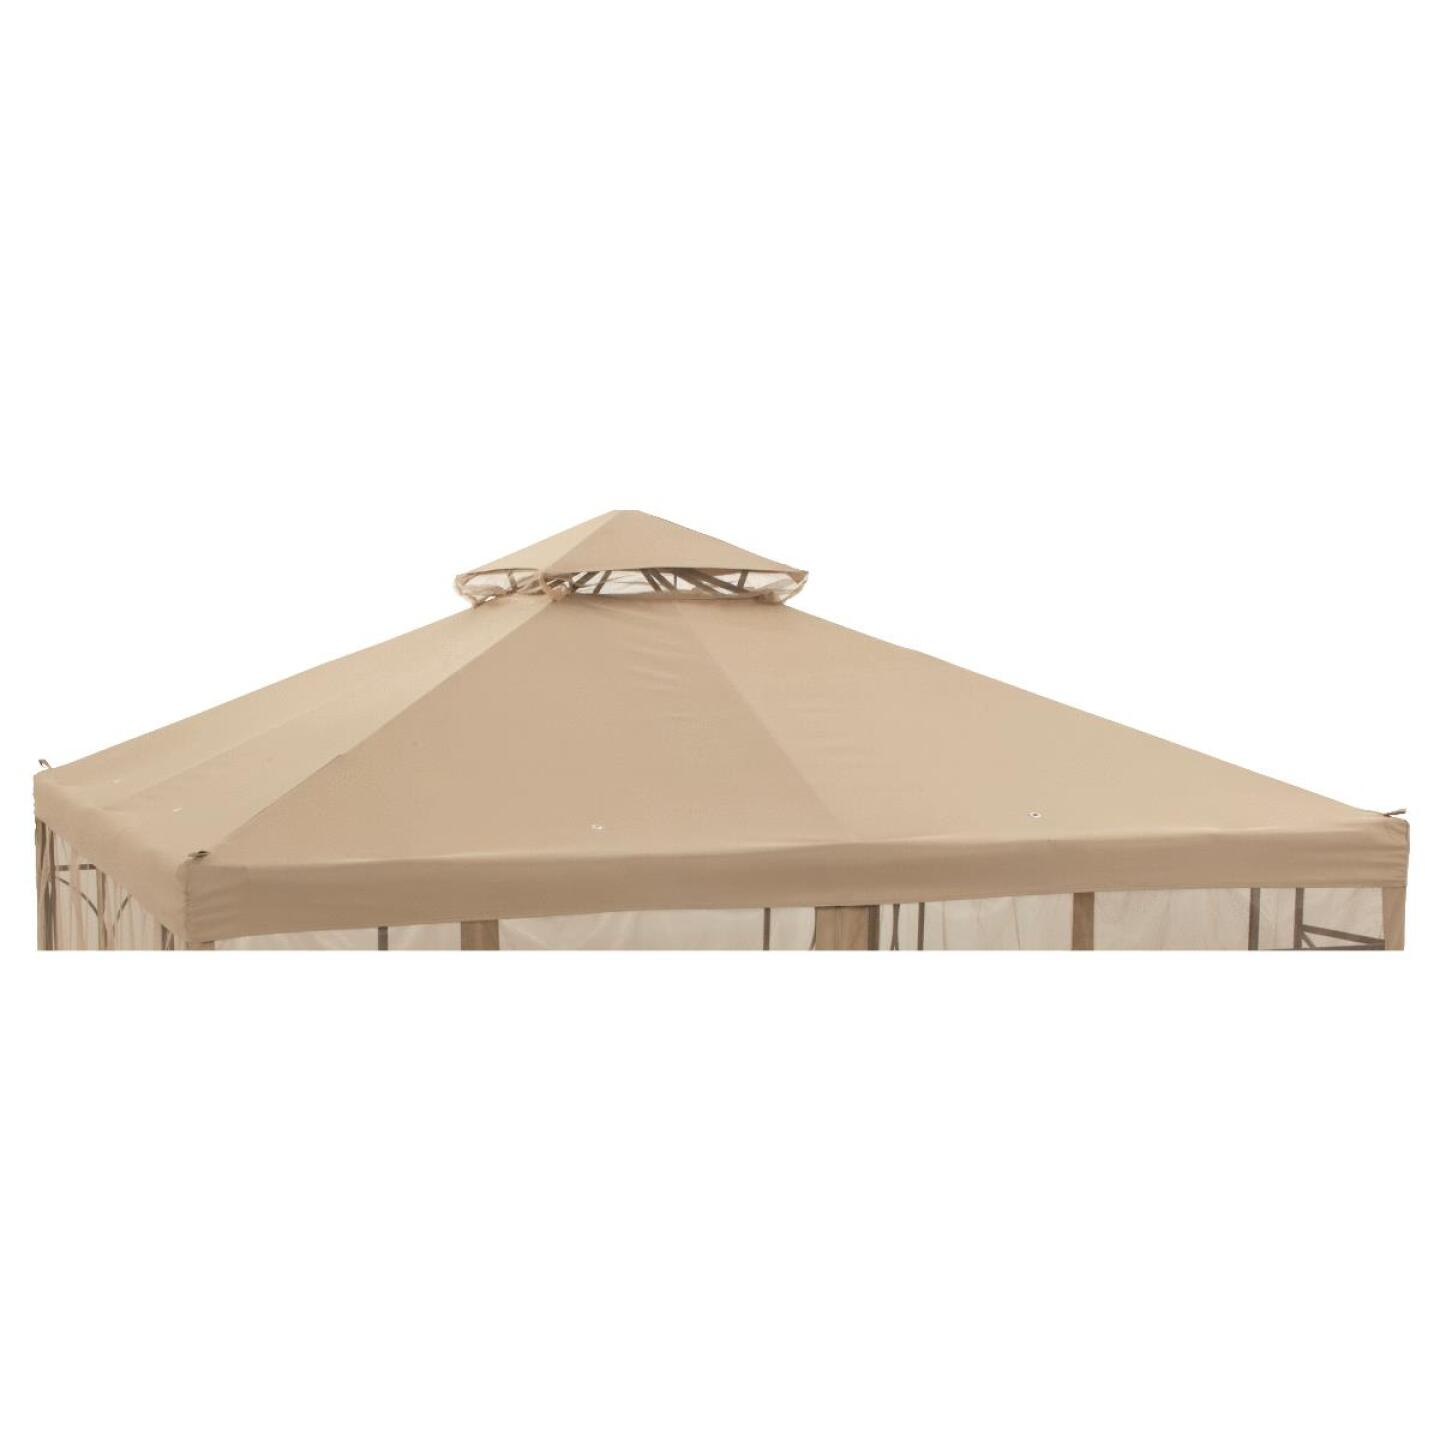 Outdoor Expressions 10 Ft. x 10 Ft. Tan Polyester Replacement Gazebo Canopy Image 1